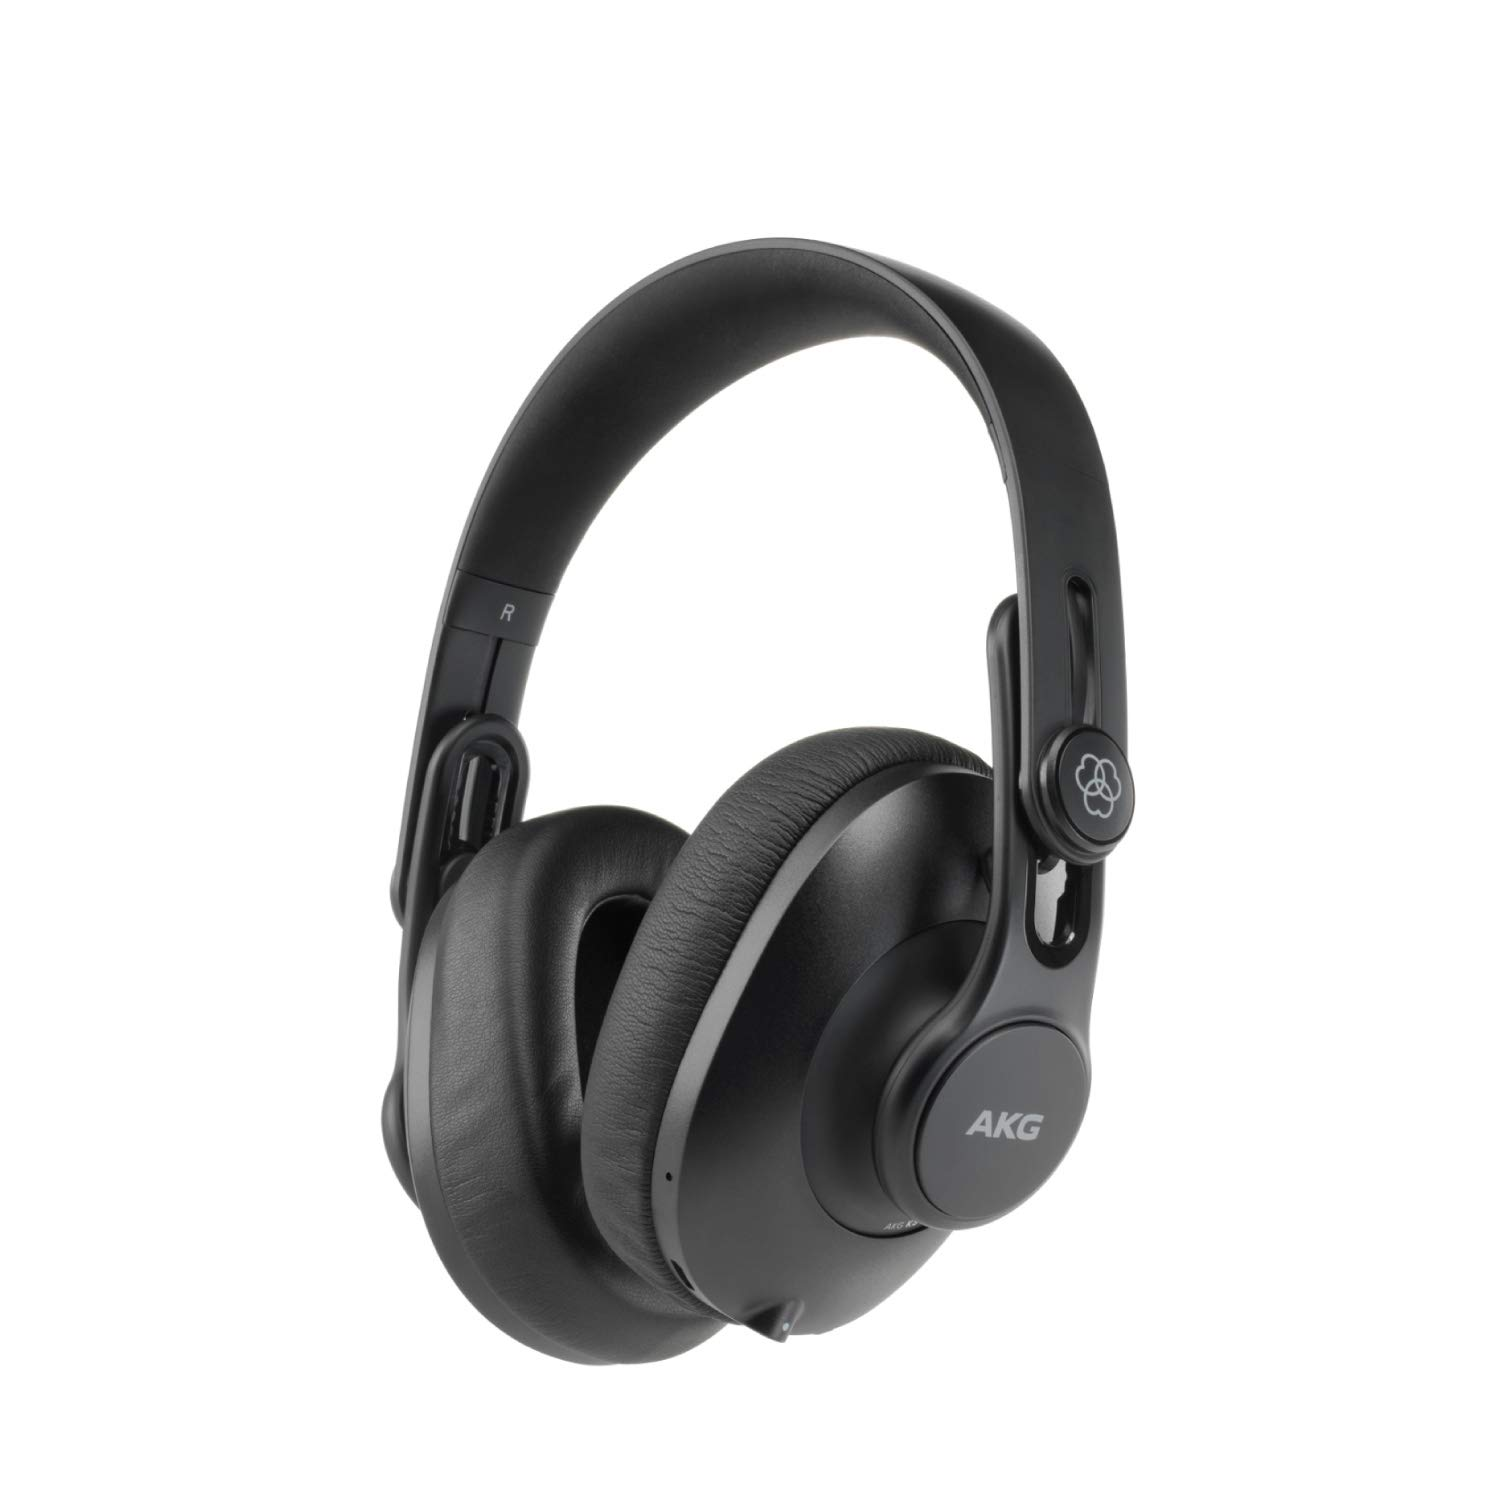 [Apply coupon] AKG K361BT Over Ear Foldable Studio Headphones With 28 Hour Battery Life, Bluetooth 5.0 And HD Microphones For Calls, Live Streams, Podcasting, Vlogging